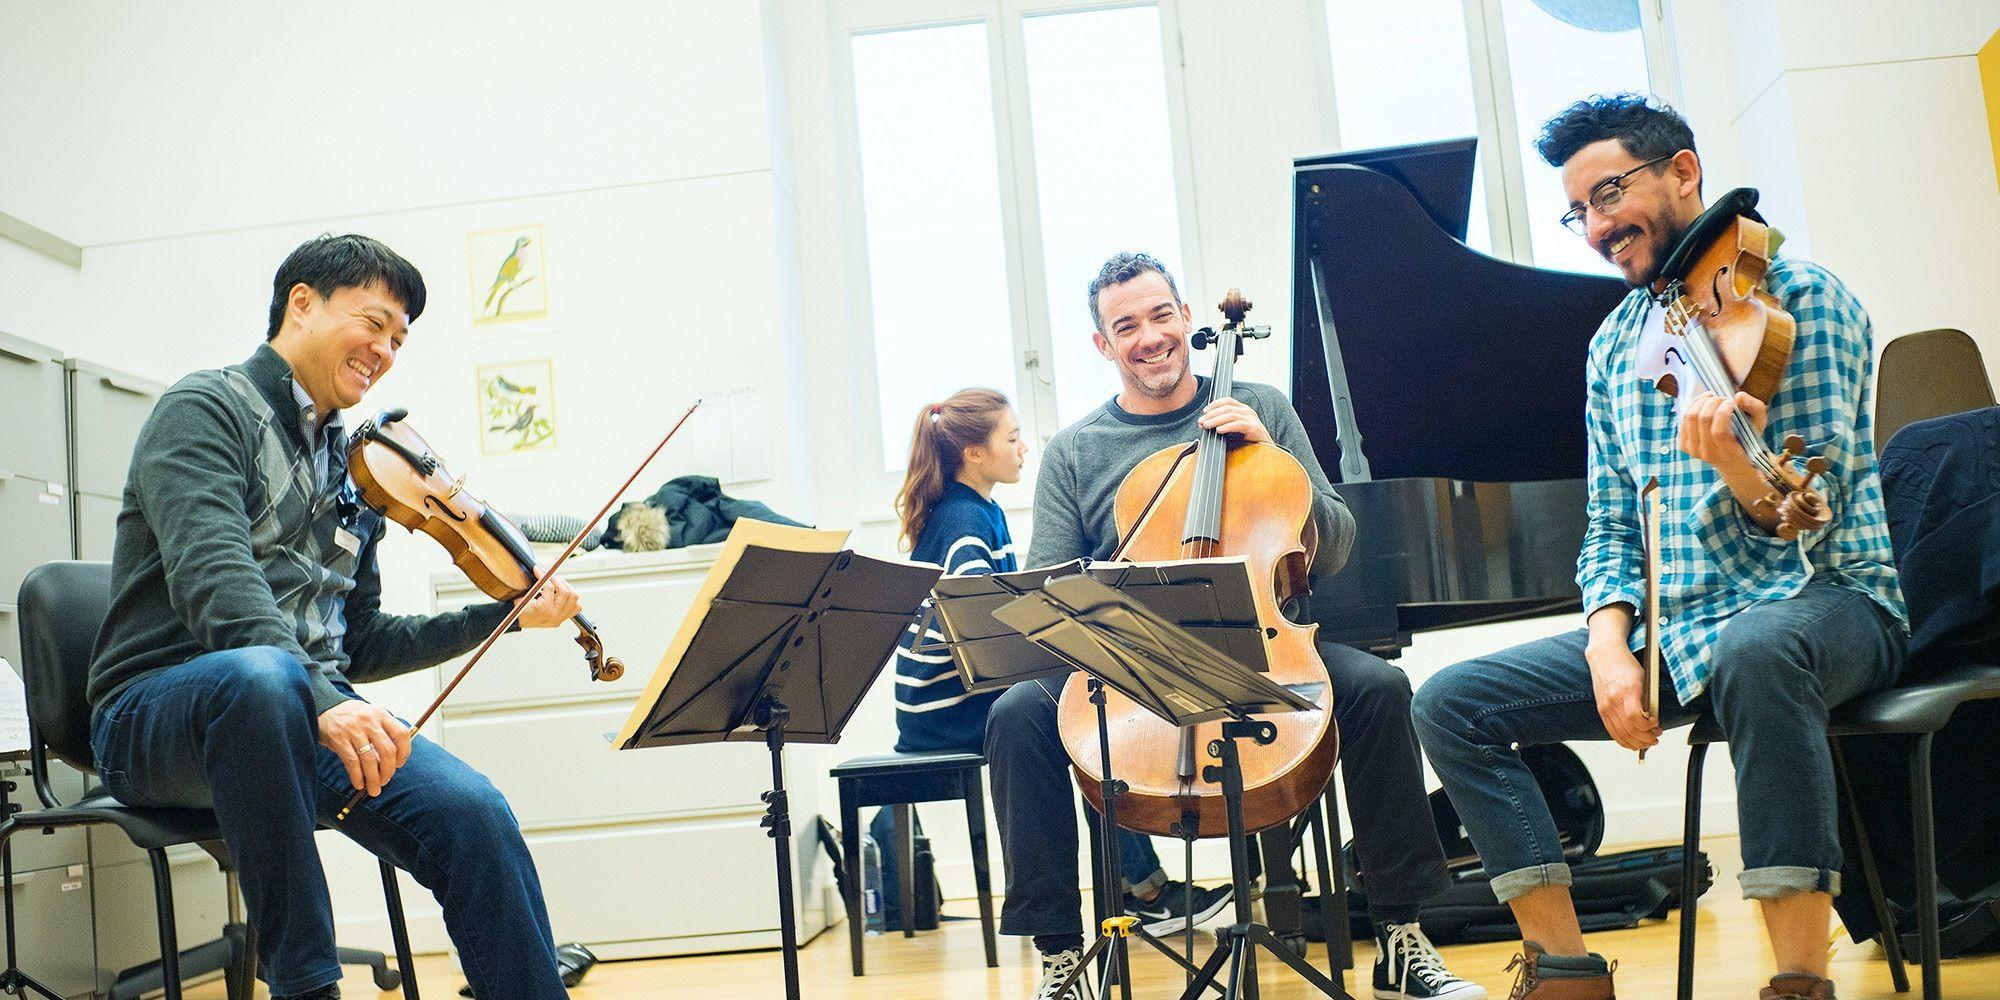 Luis Bellorin '17 with Members of the Miró Quartet